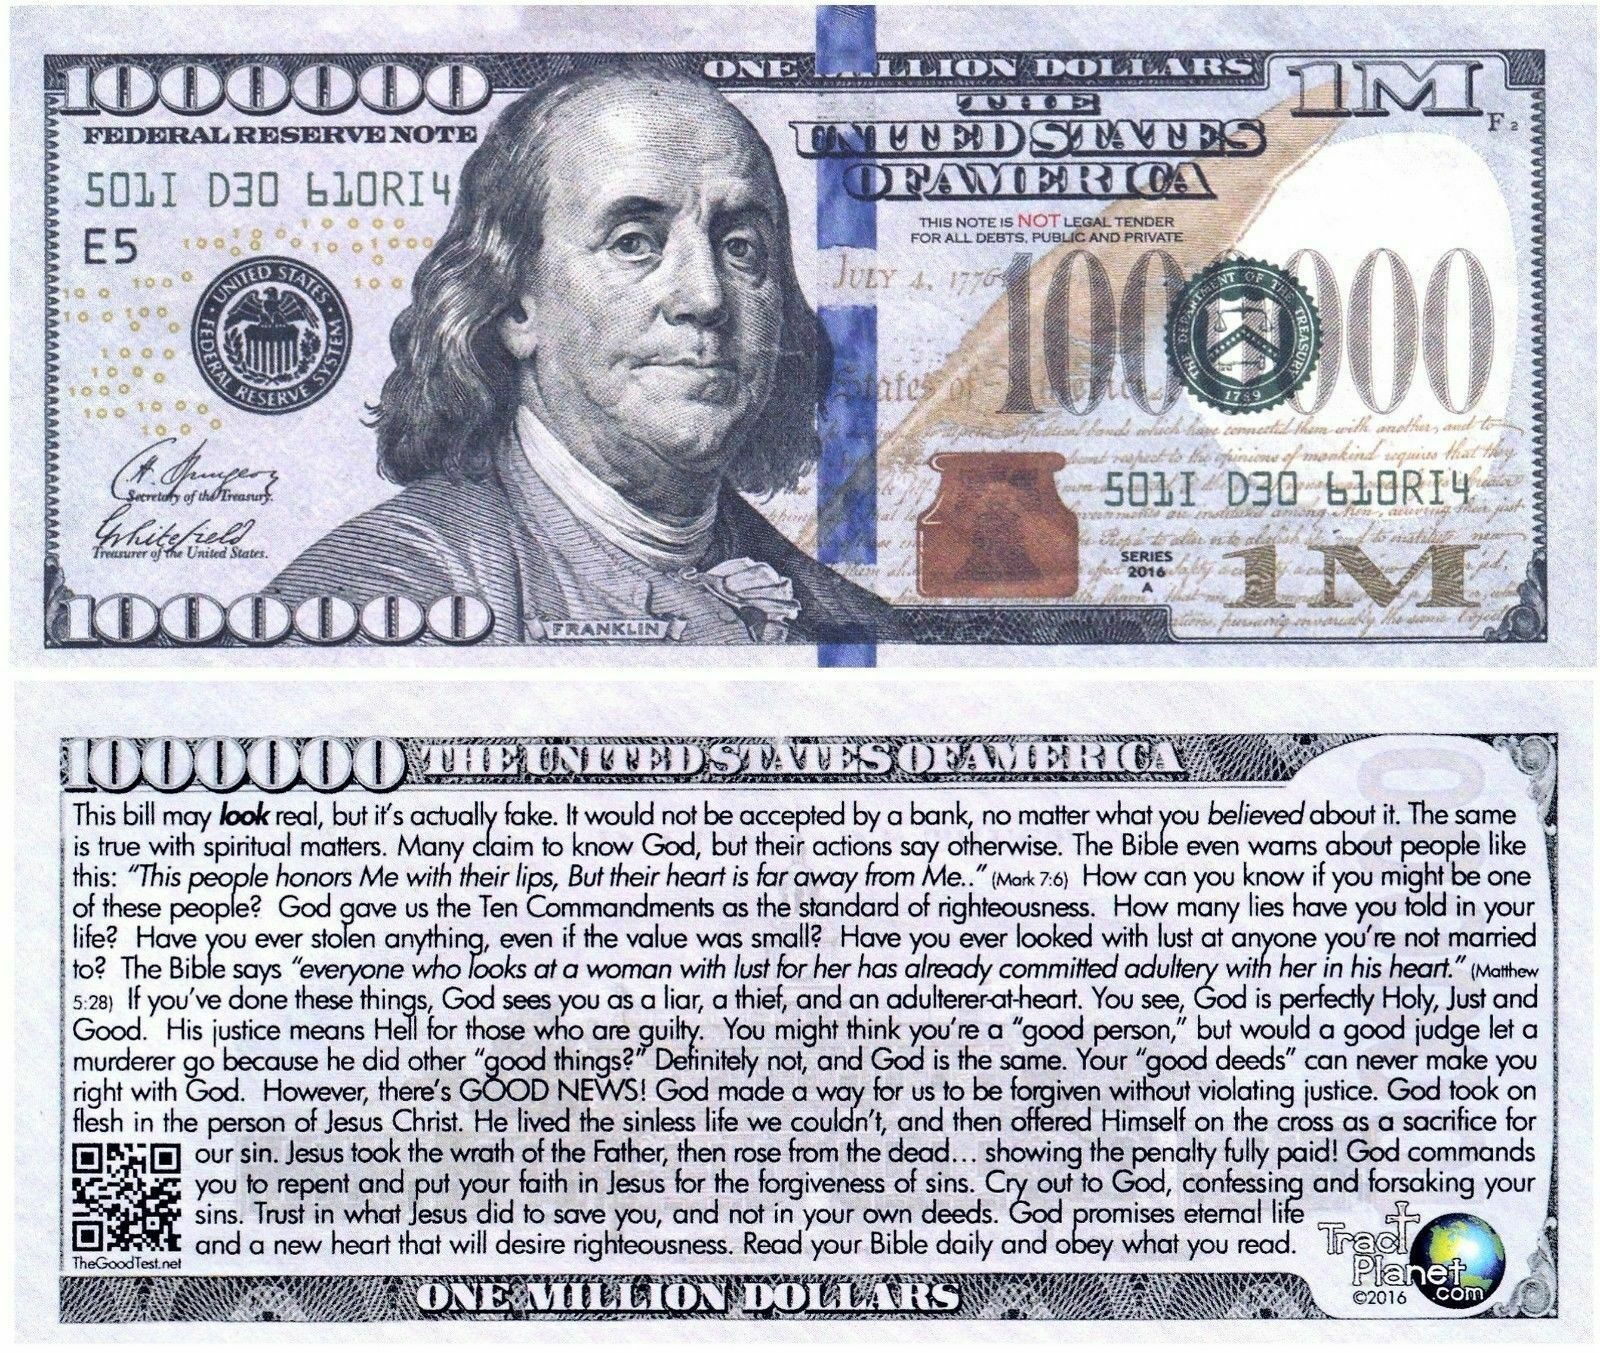 UnderDog Million Dollar Bill Fake Play Funny Money Novelty Note with FREE SLEEVE